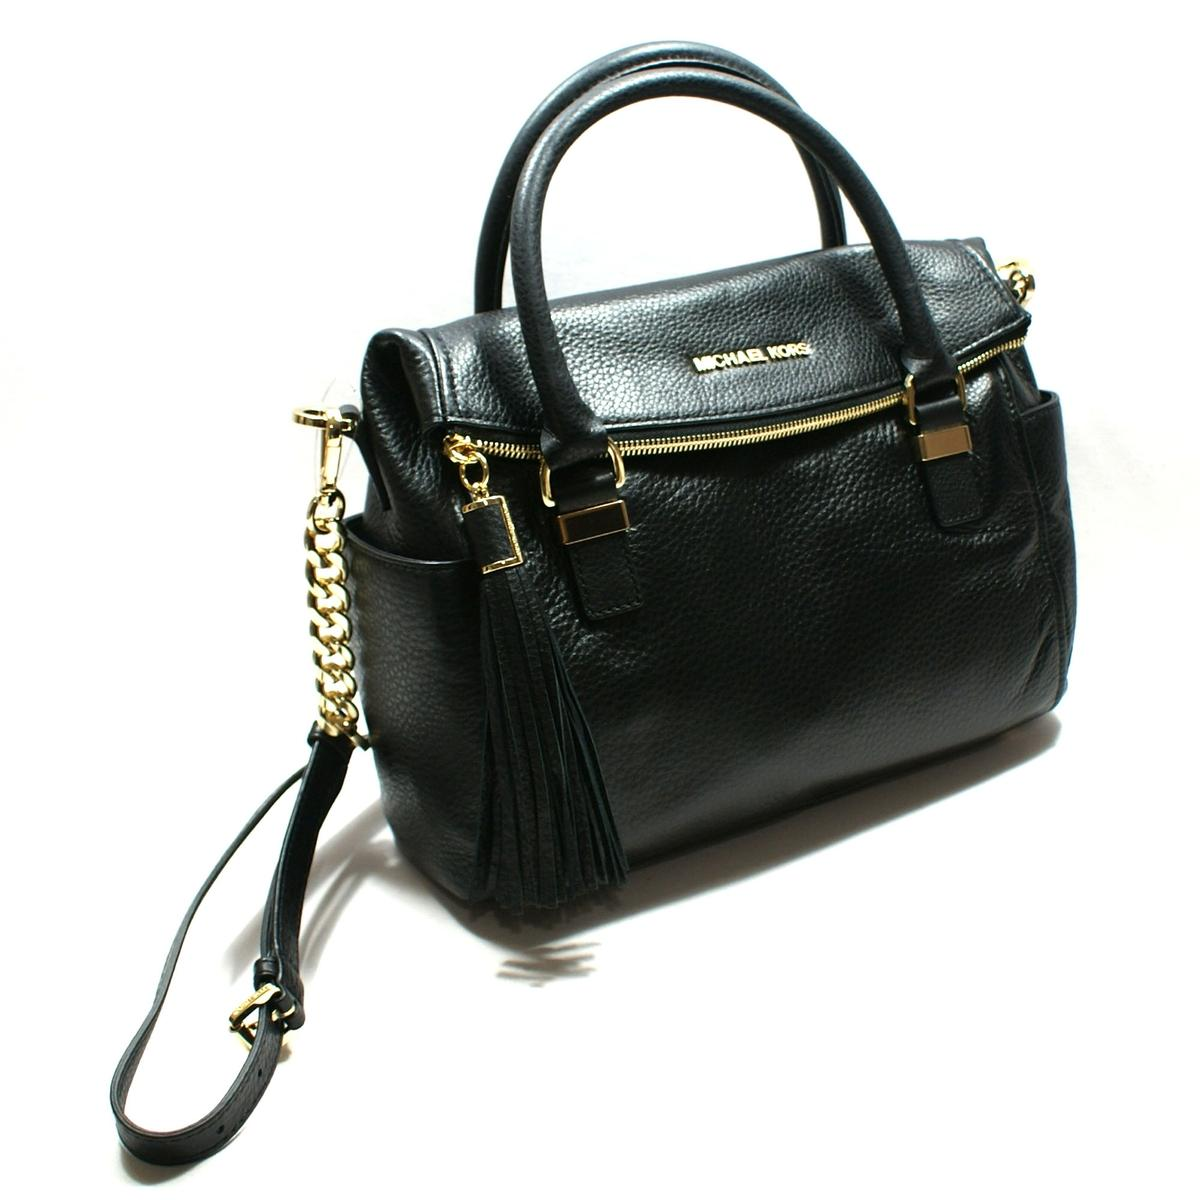 Home Michael Kors Weston Genuine Leather Medium Satchel Crossbody Black Click Thumbnail To Zoom Found